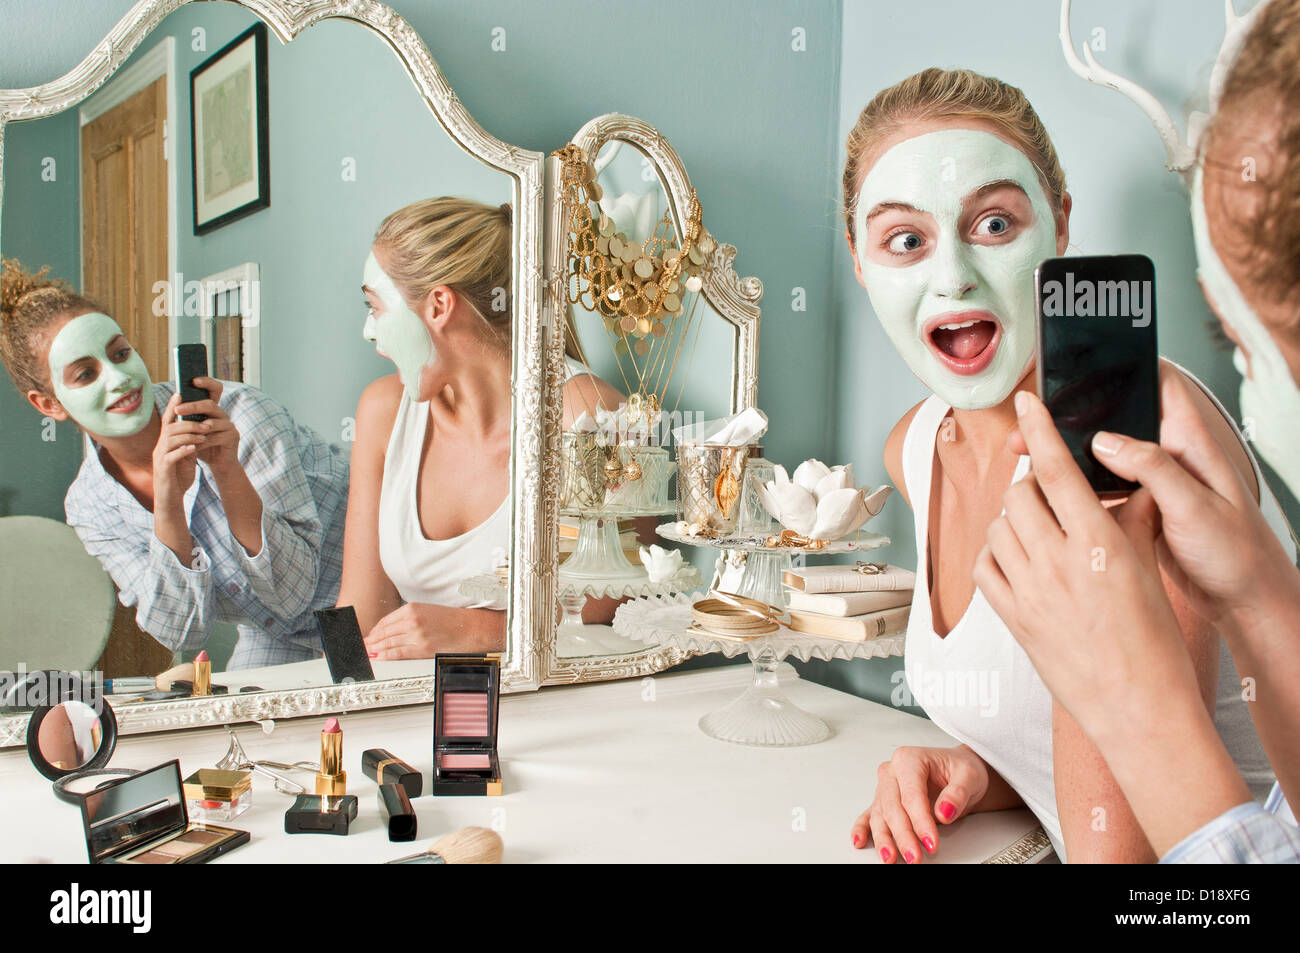 Woman wearing face mask being photographed by friend - Stock Image